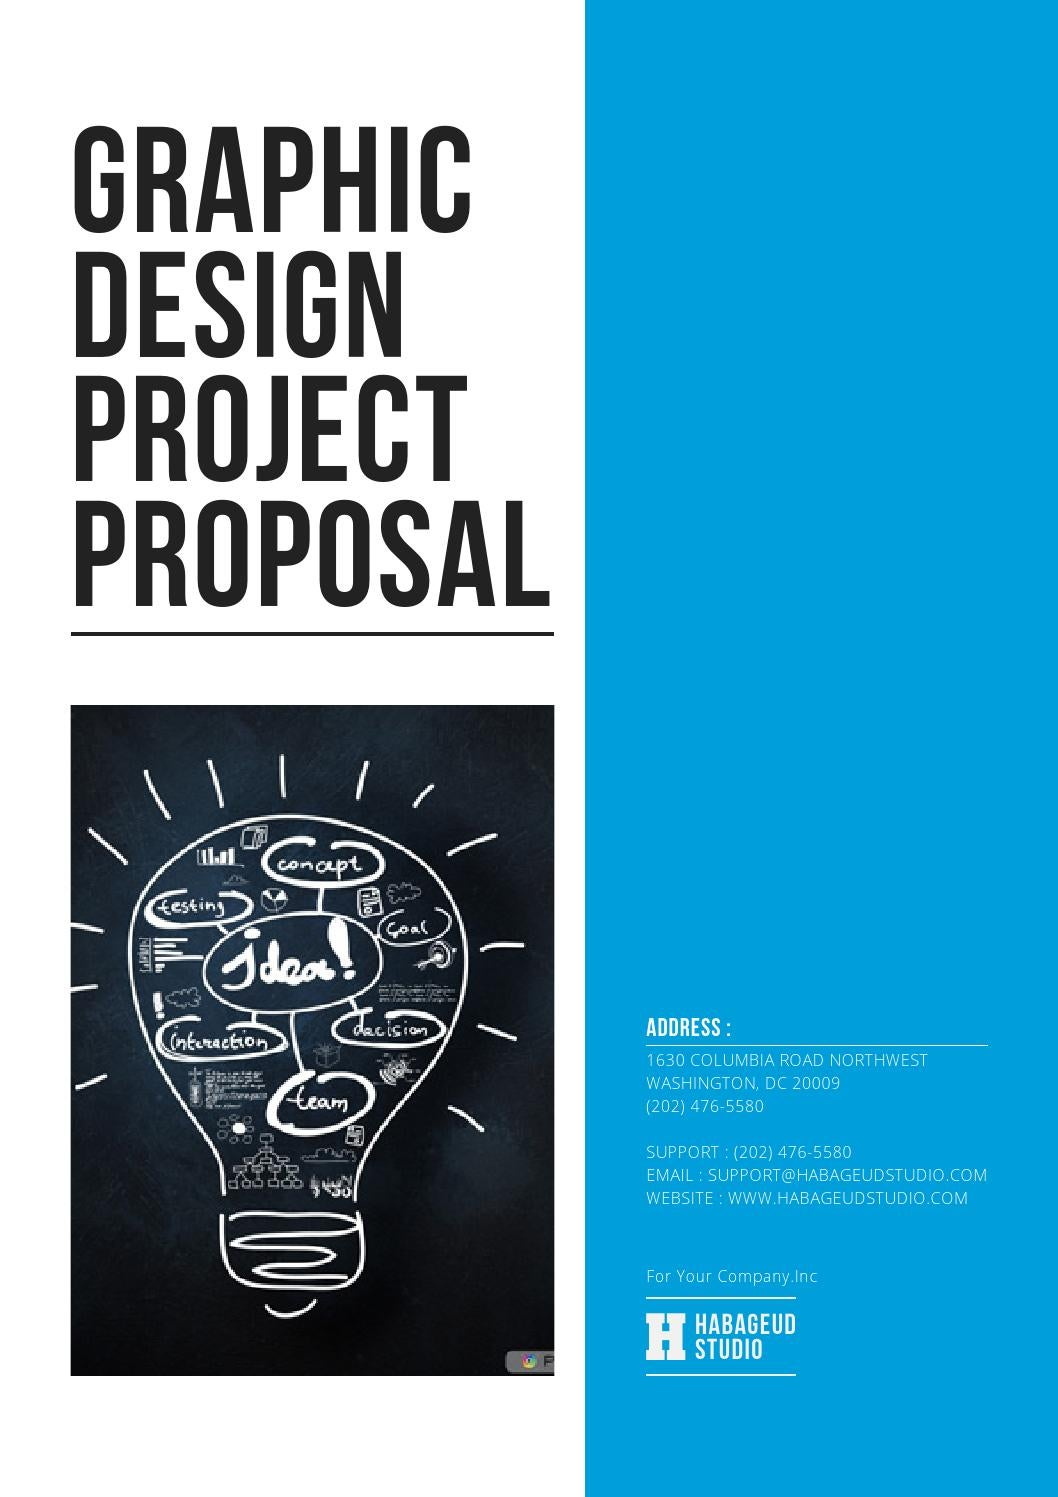 Graphic Design Project Proposal By Habageud